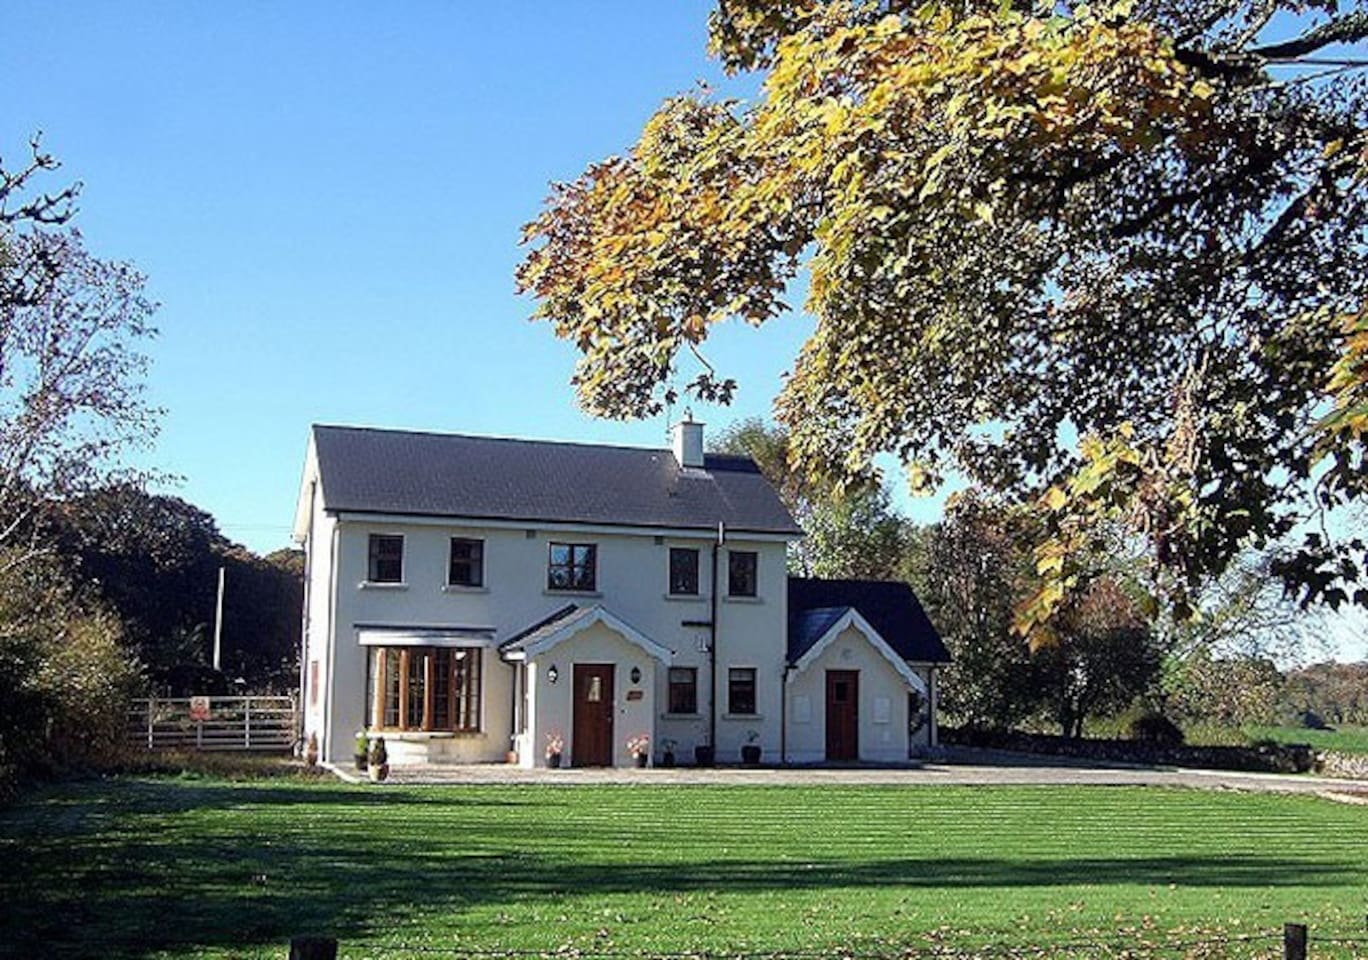 Beech Lodge & Oak Lodge - Modern facilities set in an idyllic countryside setting, 15 minutes from Kilkenny City